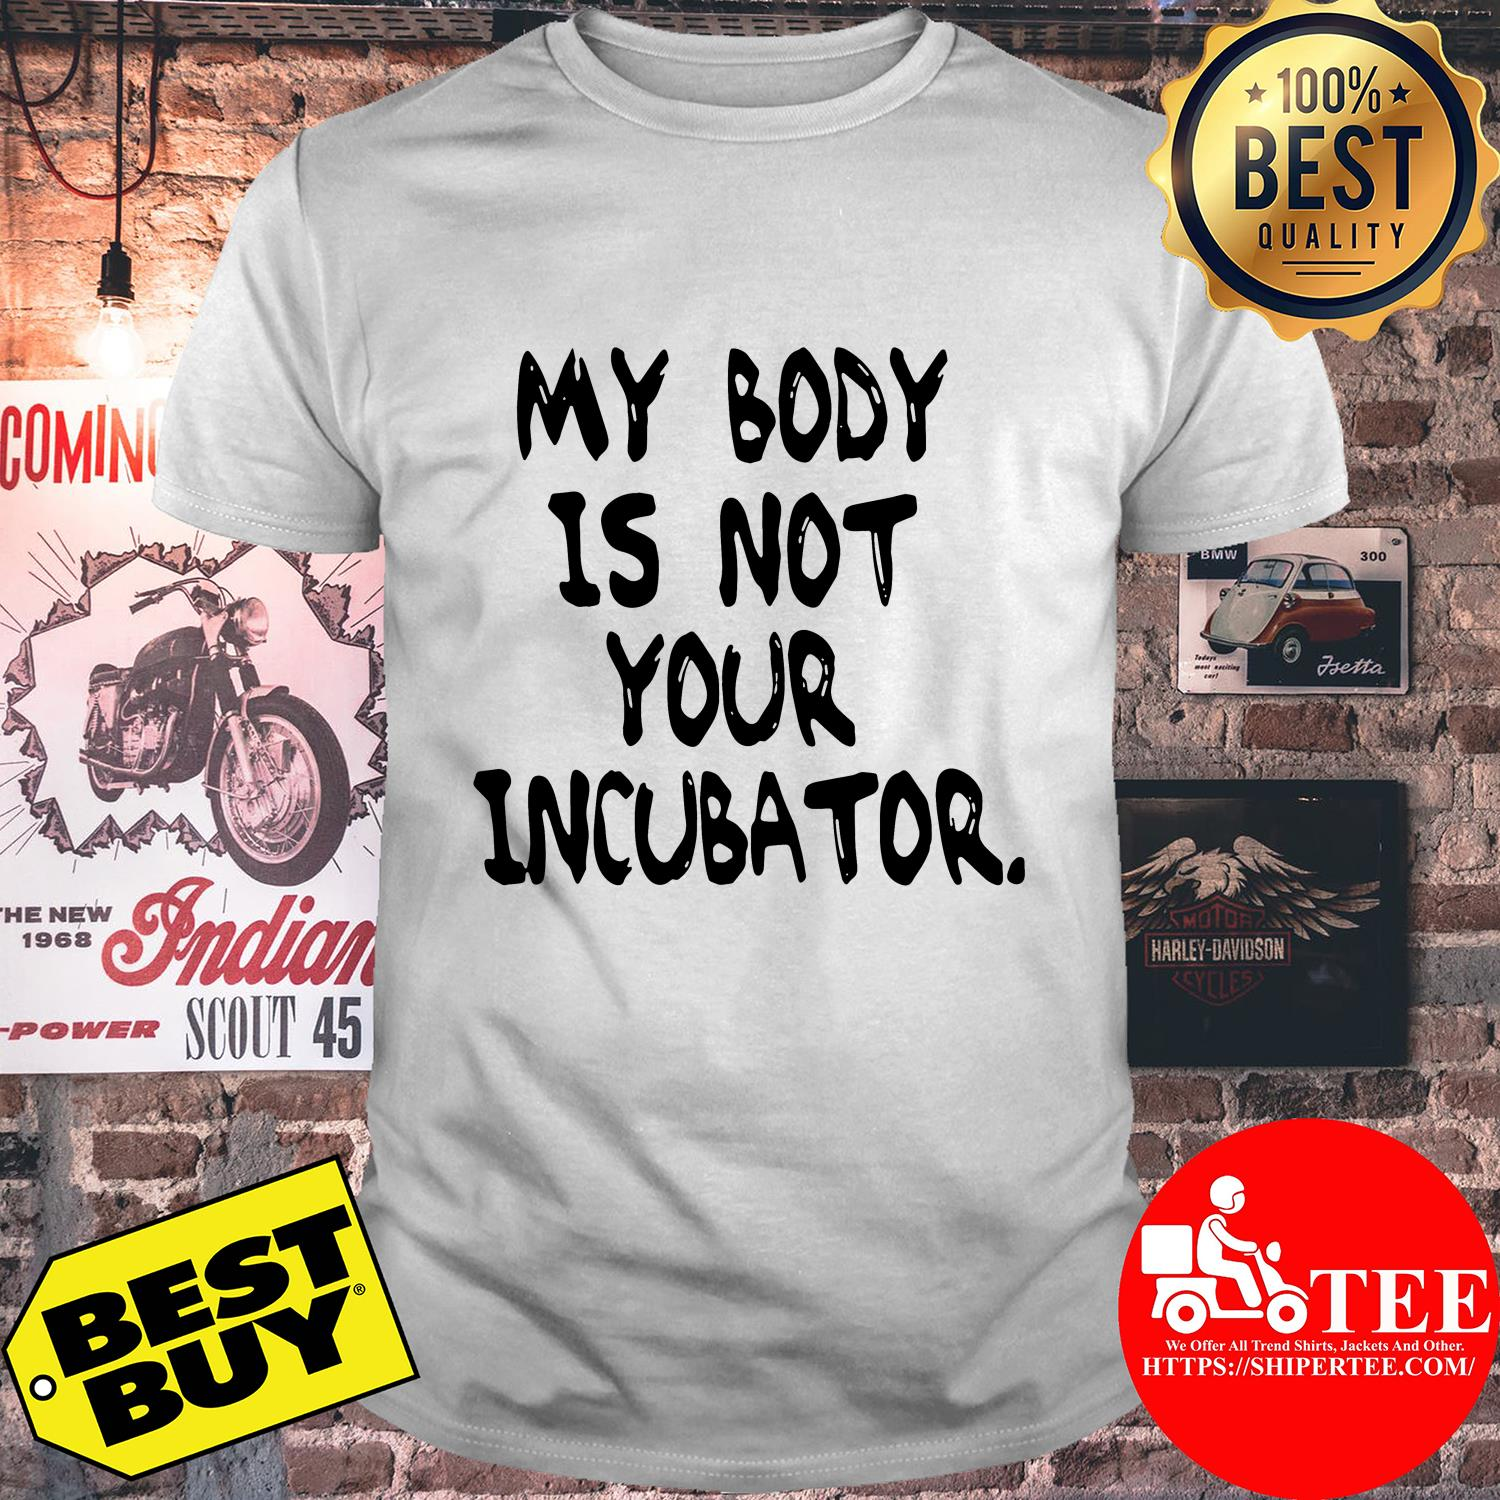 My body is not your incubator shirt